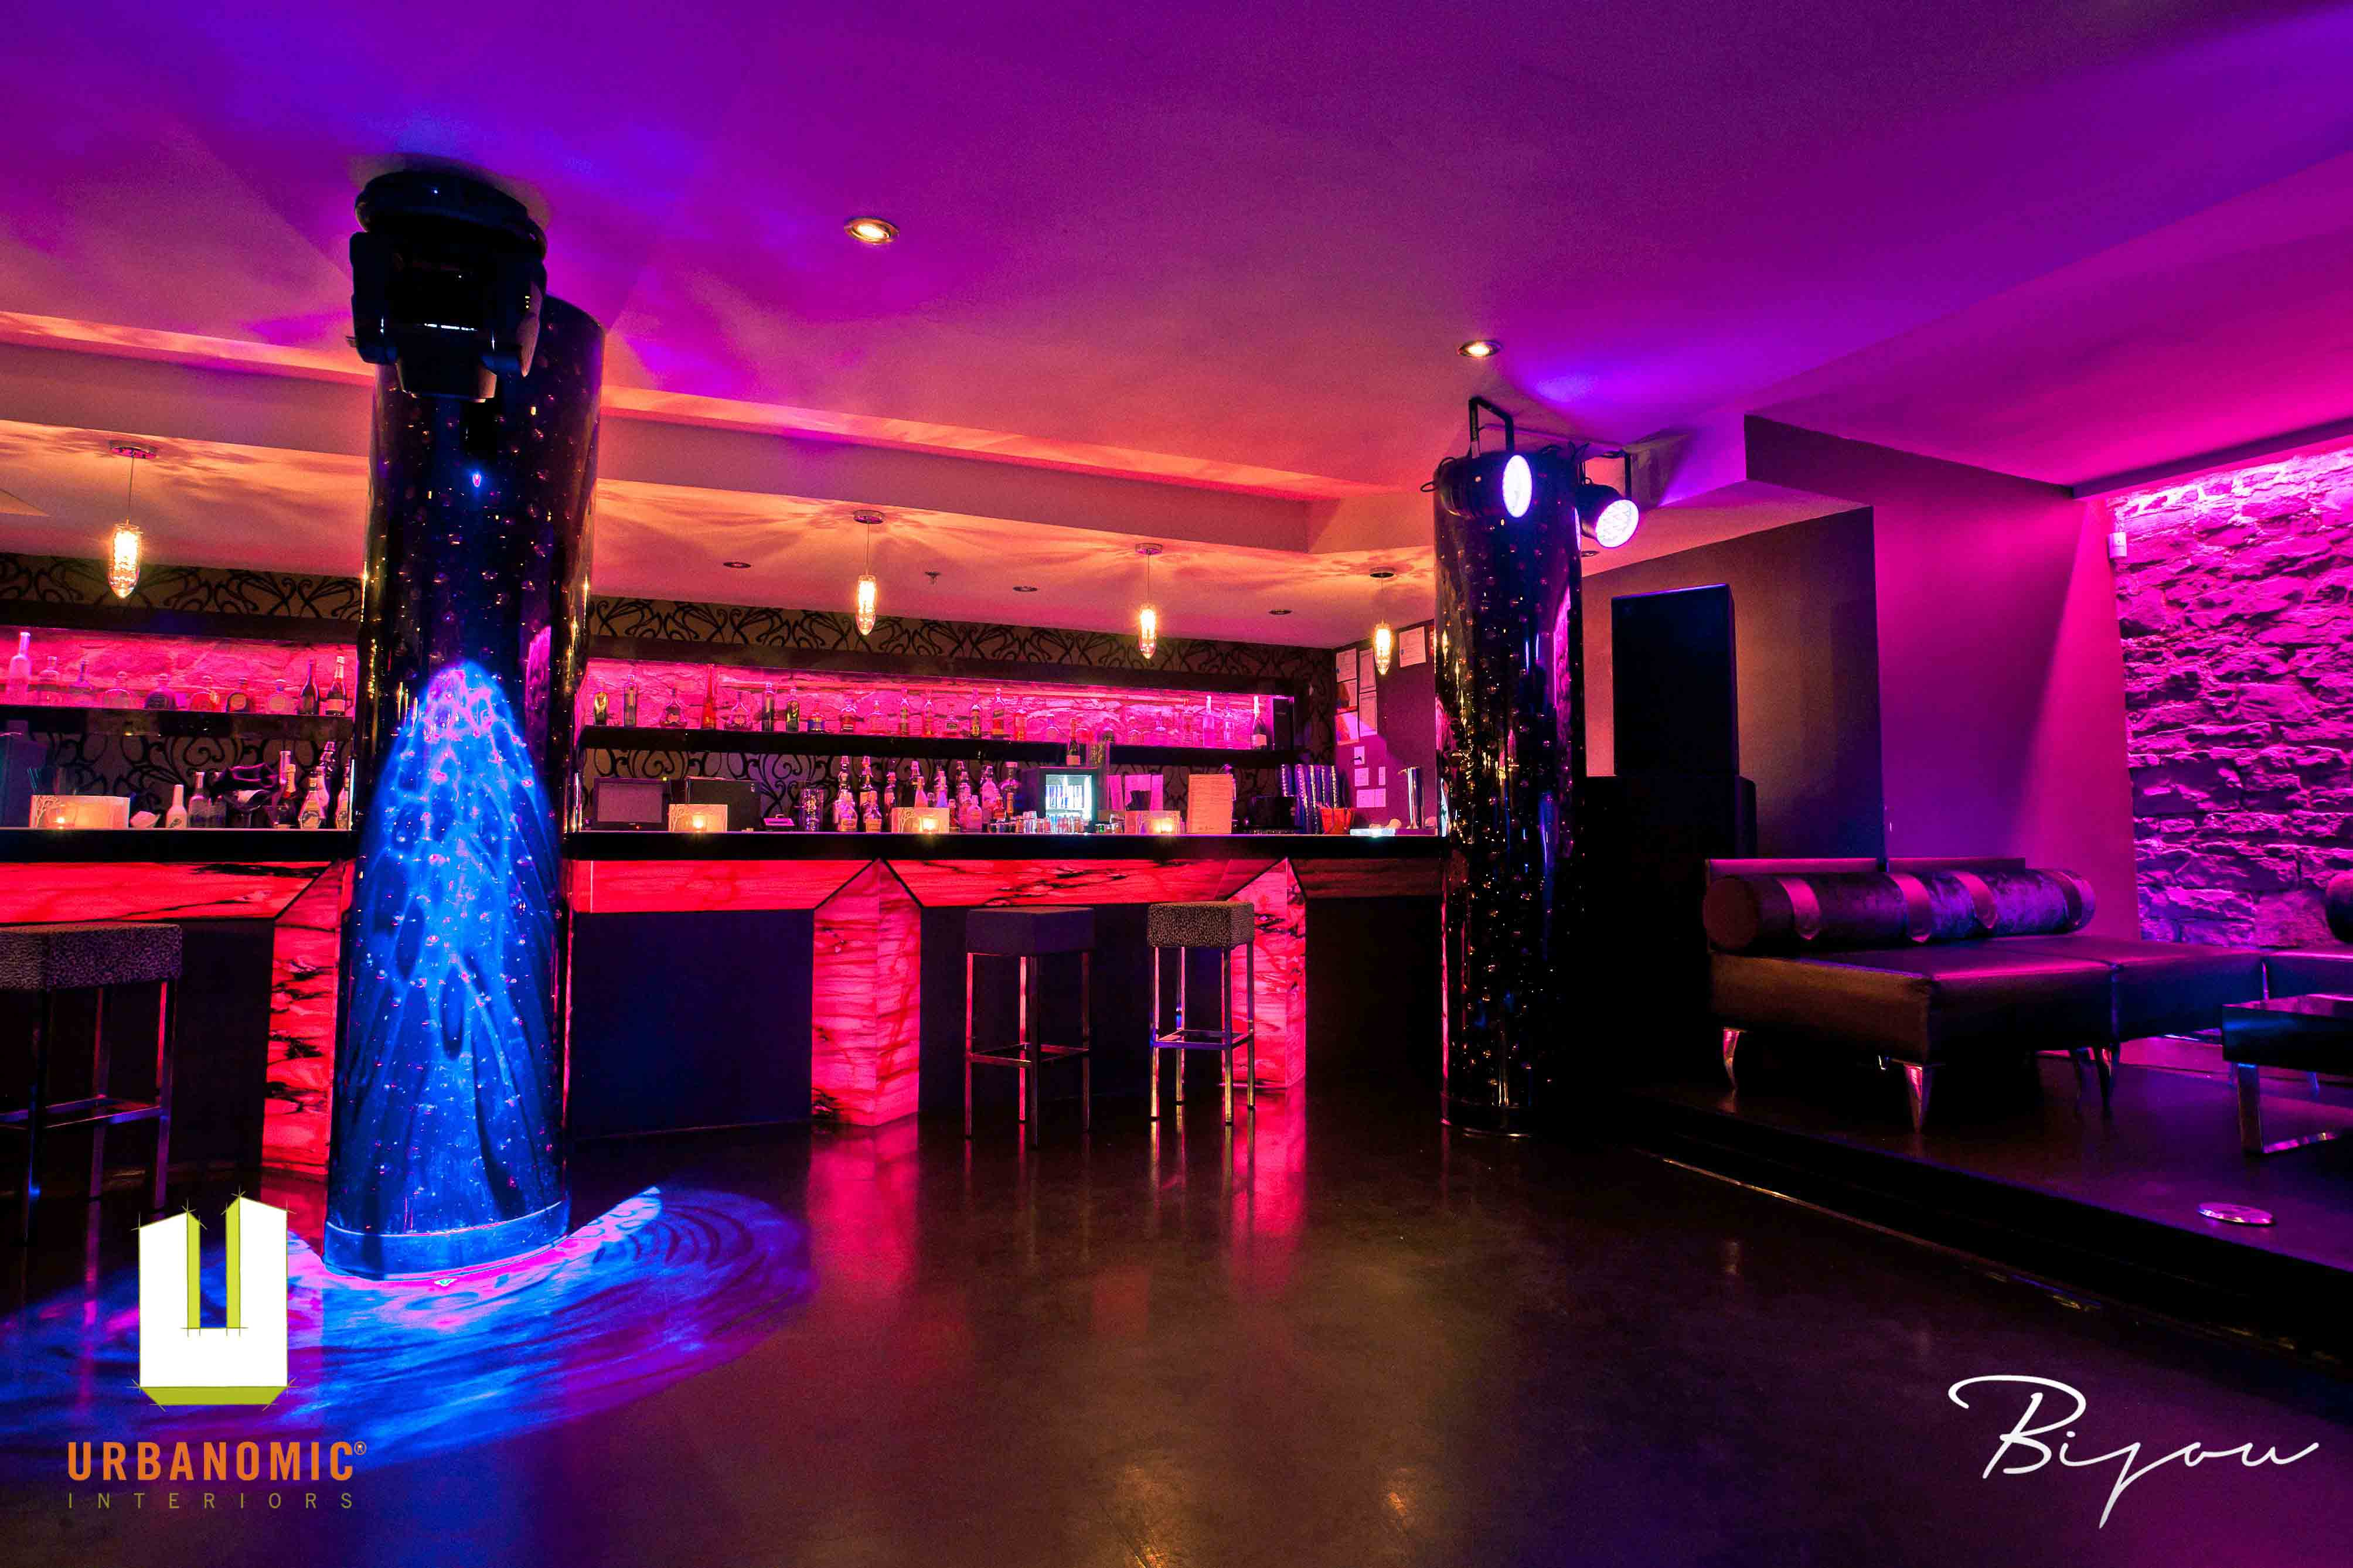 Club lounge interior design images for Lounge designs